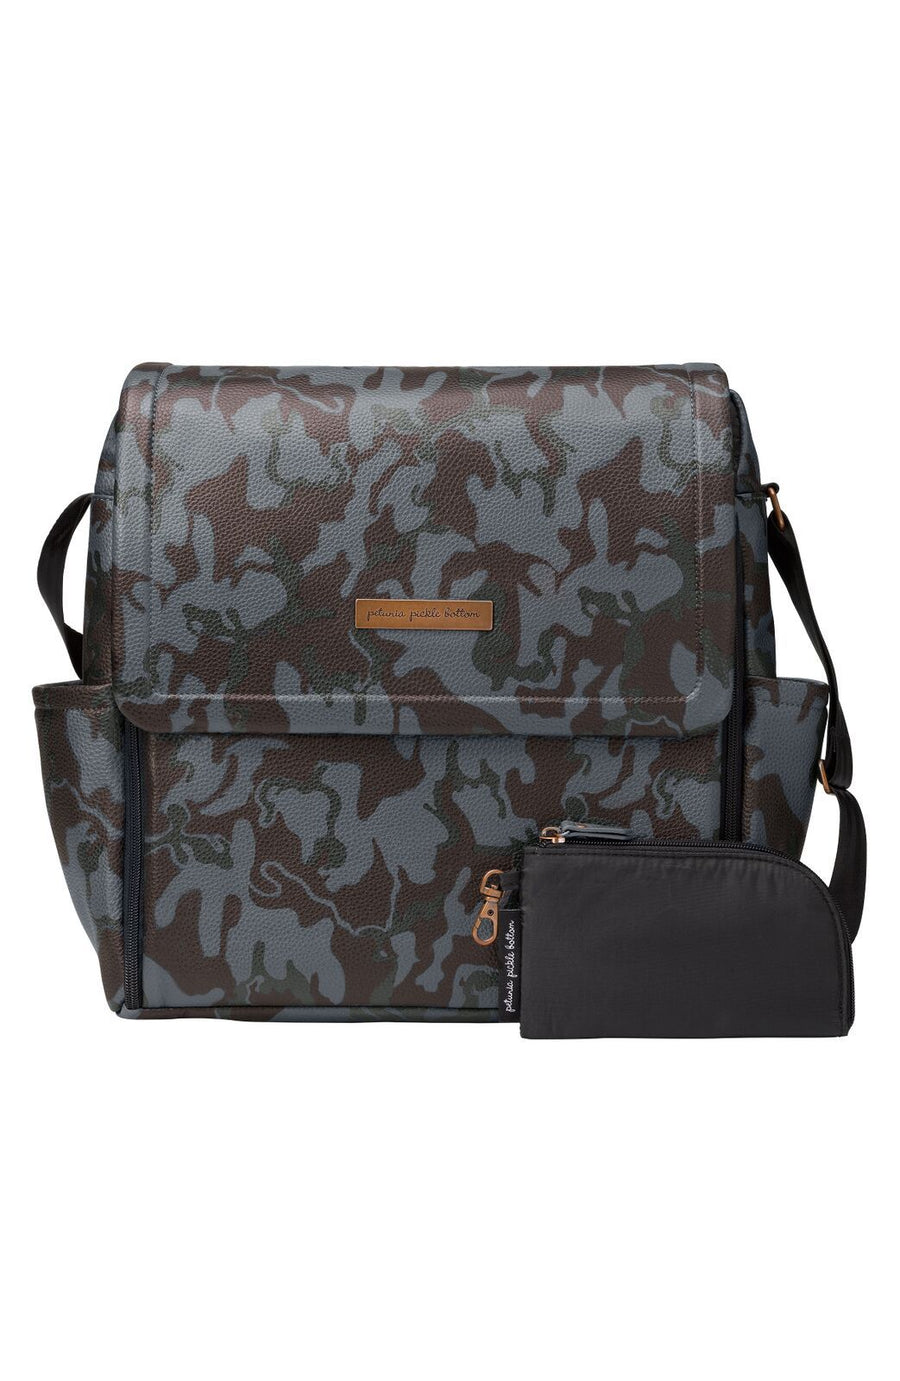 THE BOXY BACKPACK IN CAMO | Petunia Pickle Bottom